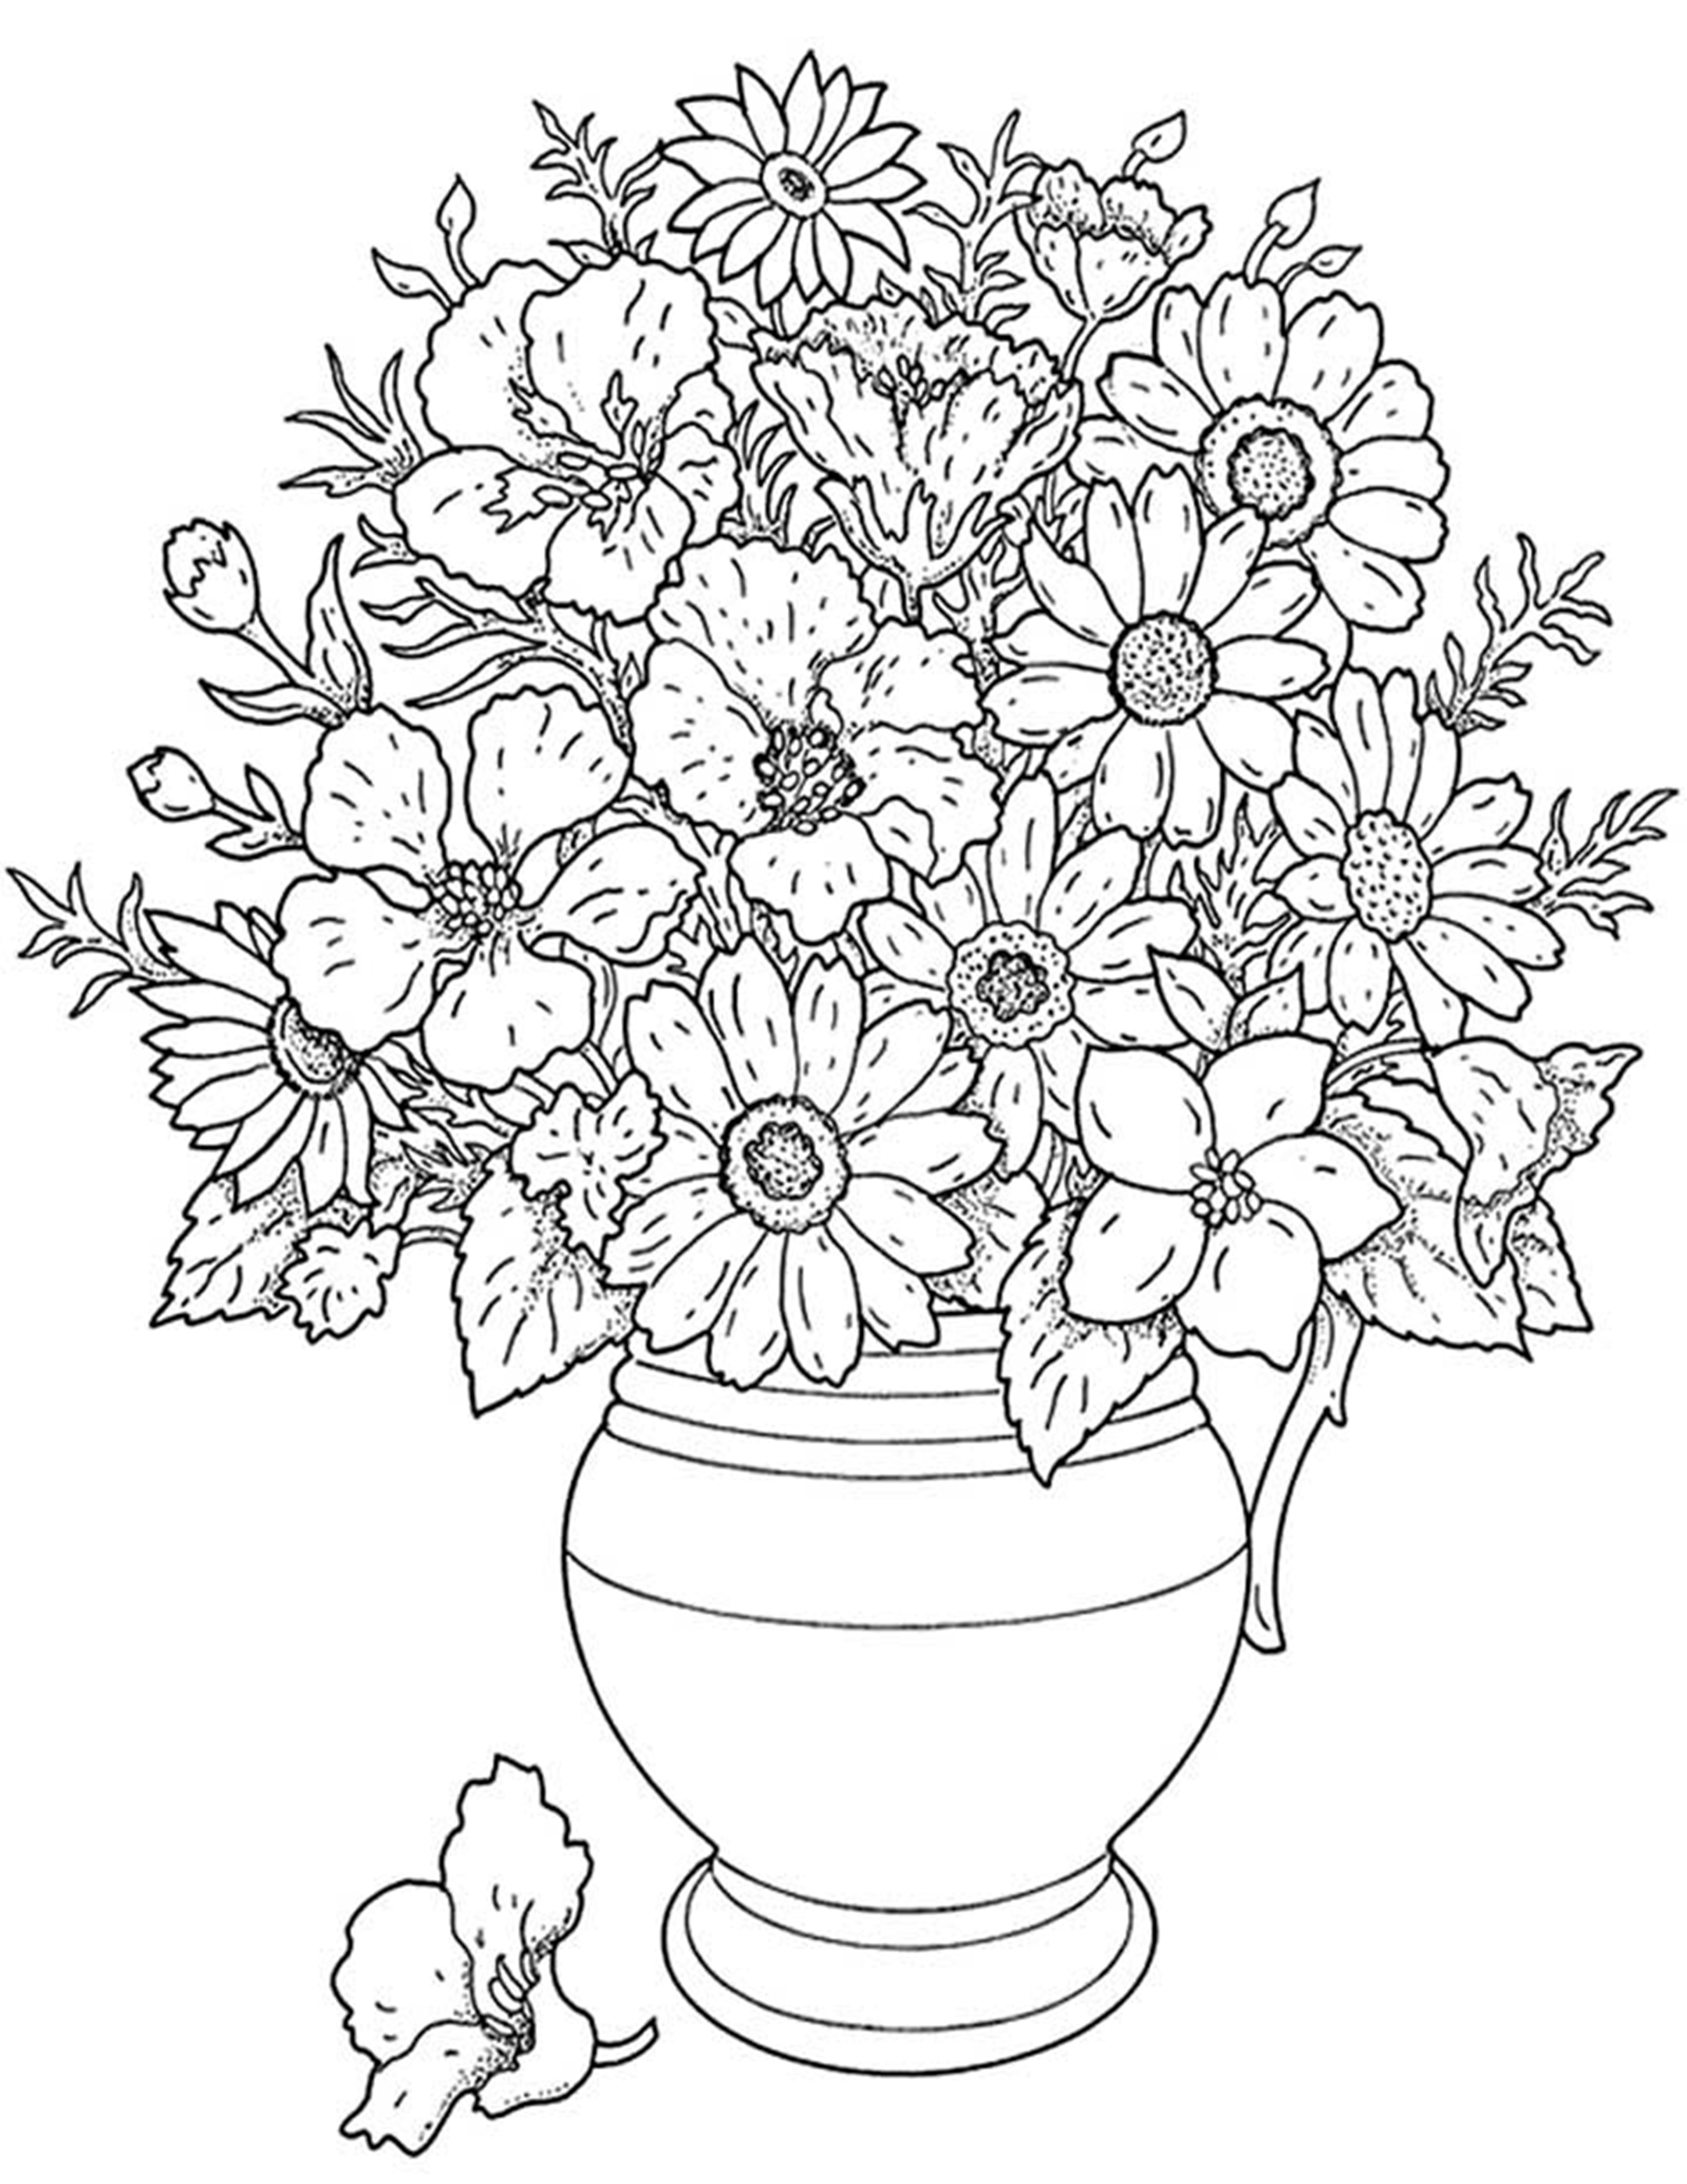 flower printable coloring sheets free easy to print flower coloring pages tulamama coloring sheets flower printable